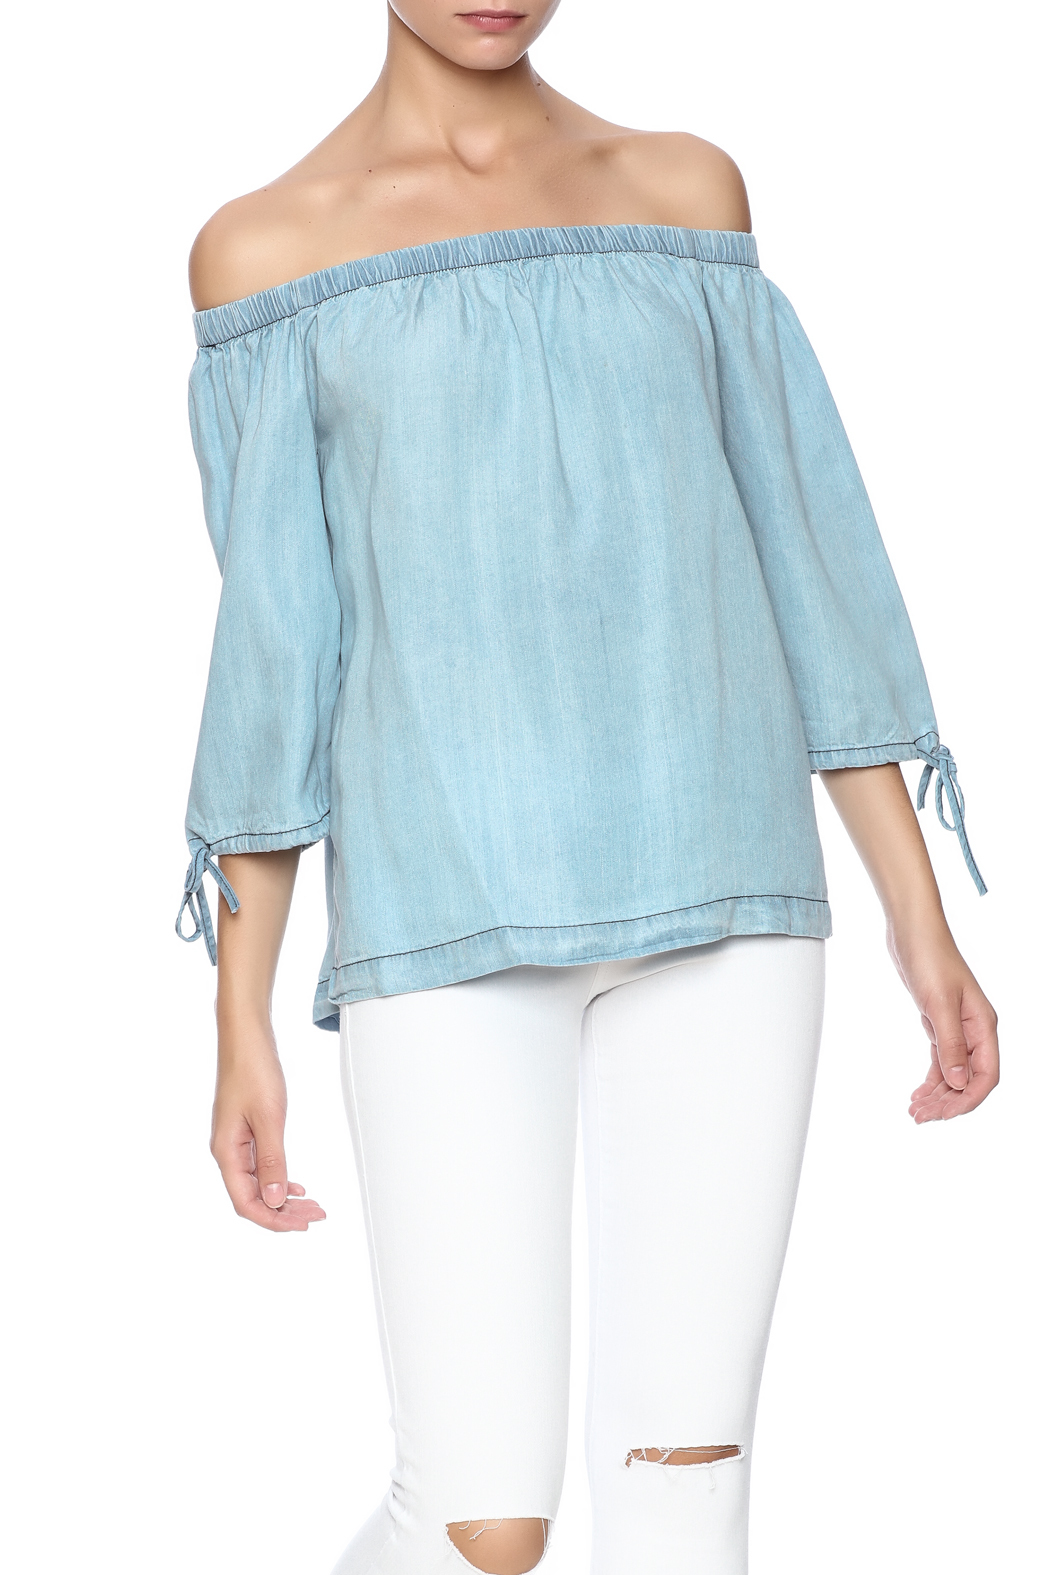 61d84335715b41 Sans Souci Chambray Off Shoulder Top from California by YUNI ...